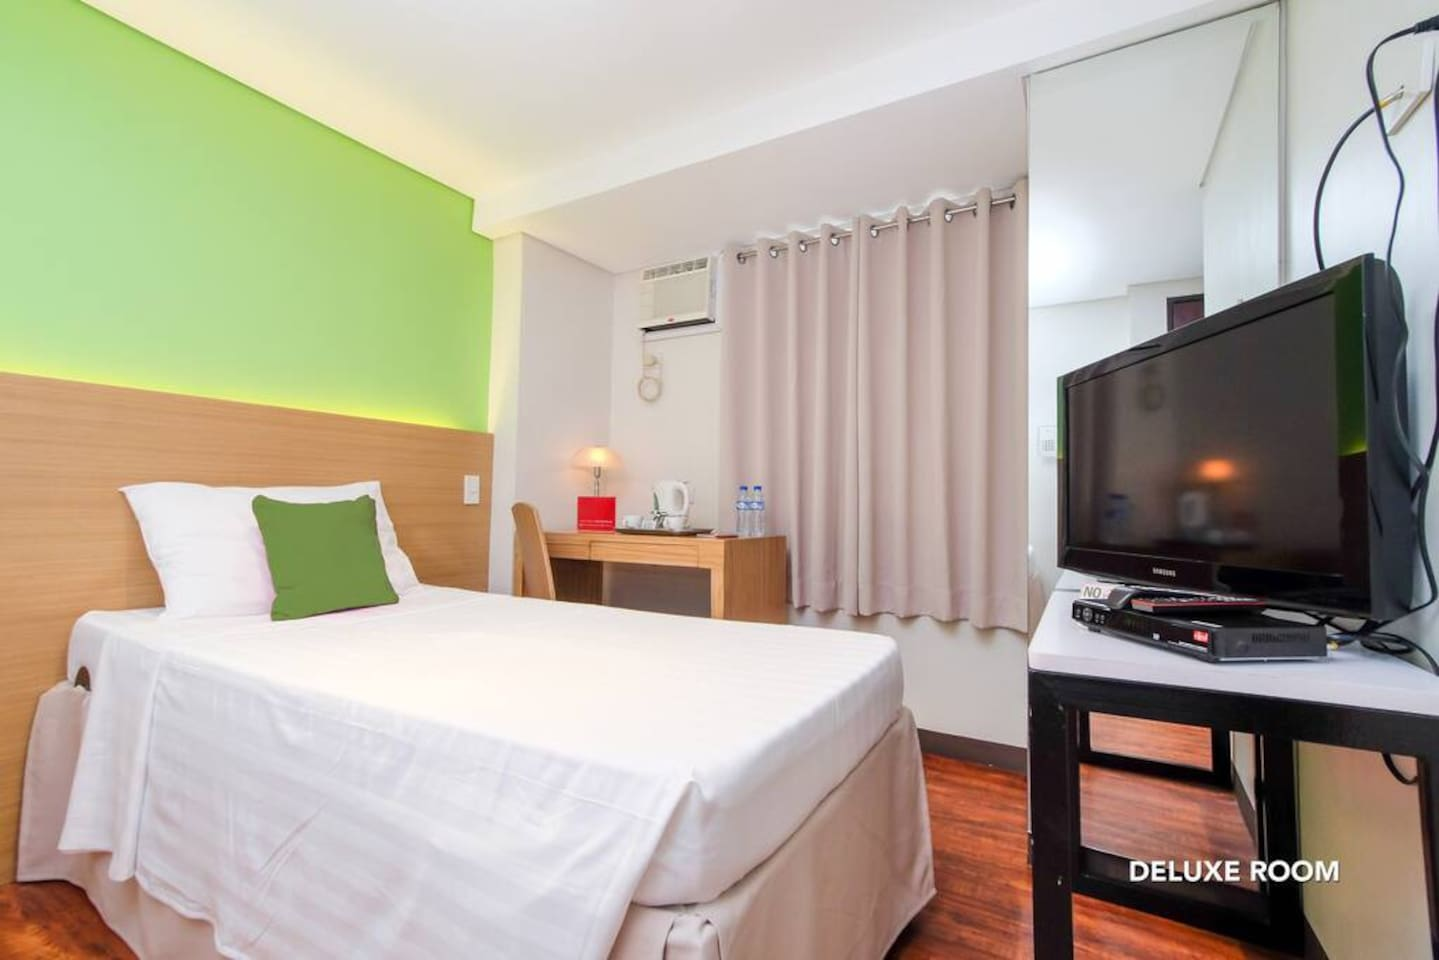 Interior of DeLuxe Twin Room at MySpace Hotel @BGC. Room amenities shown are desk, lamp shade, cable television, electric kettles with cups and free distilled water.